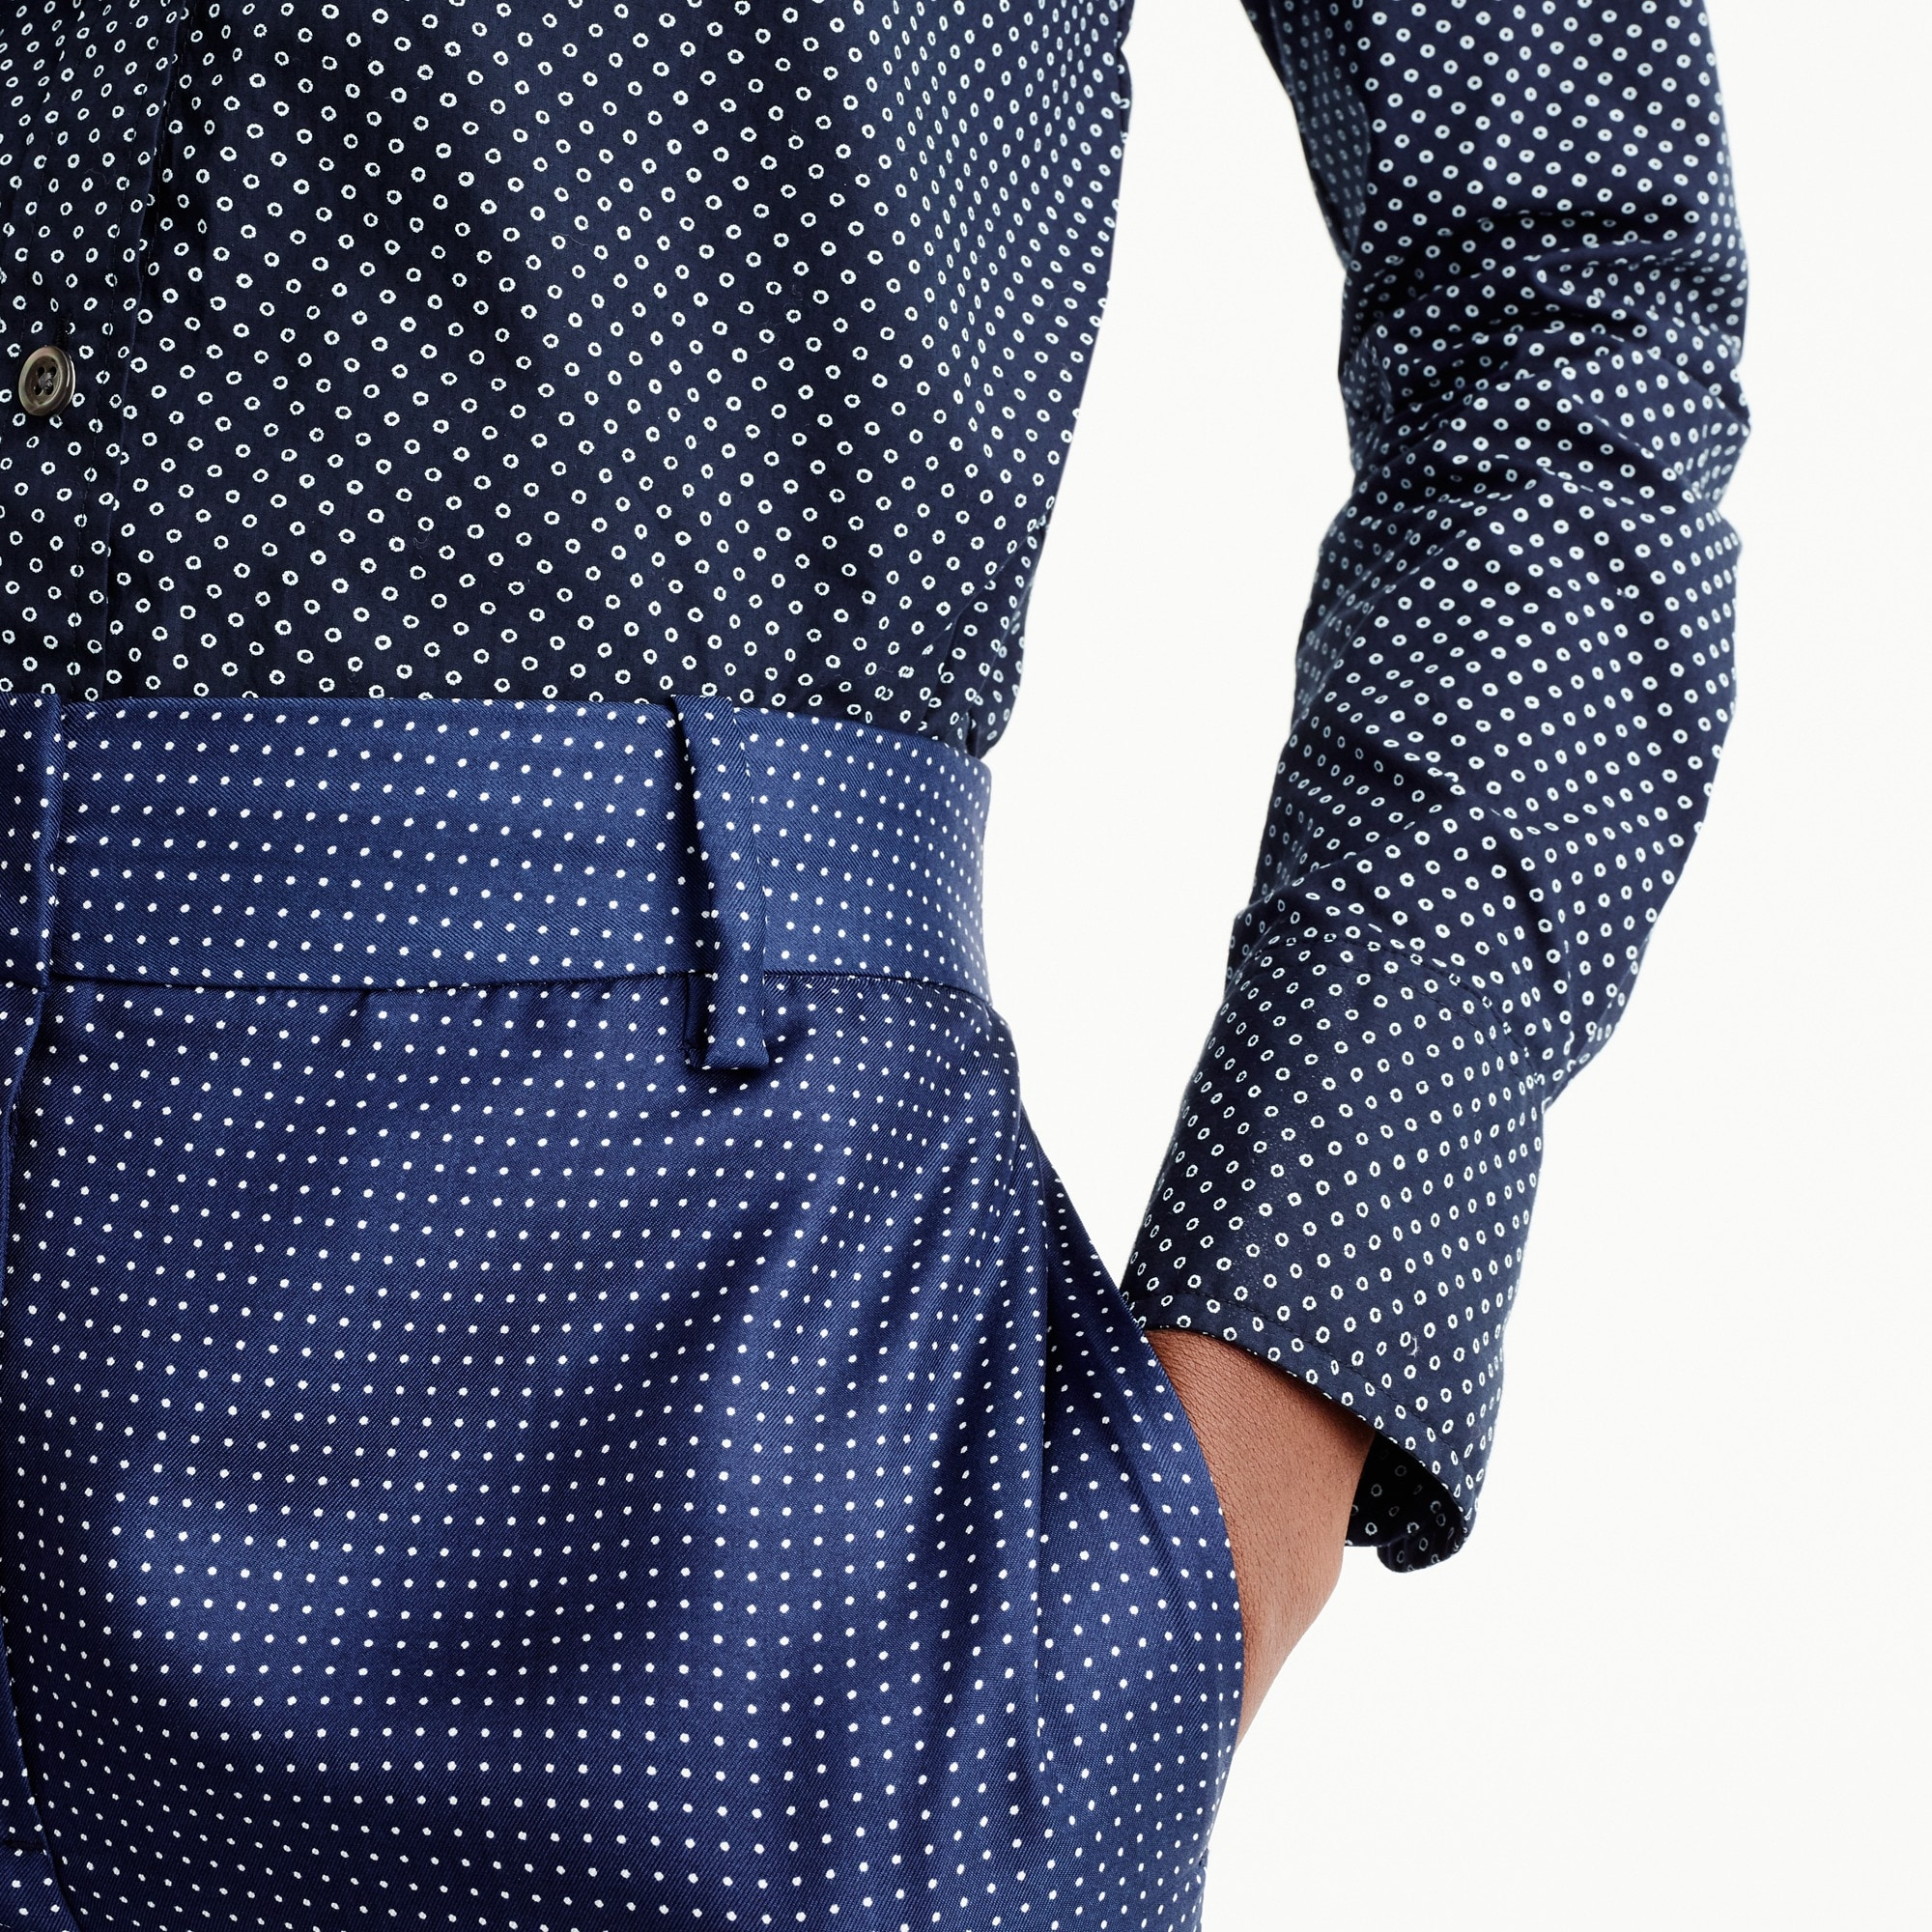 Petite Perfect shirt in polka dot